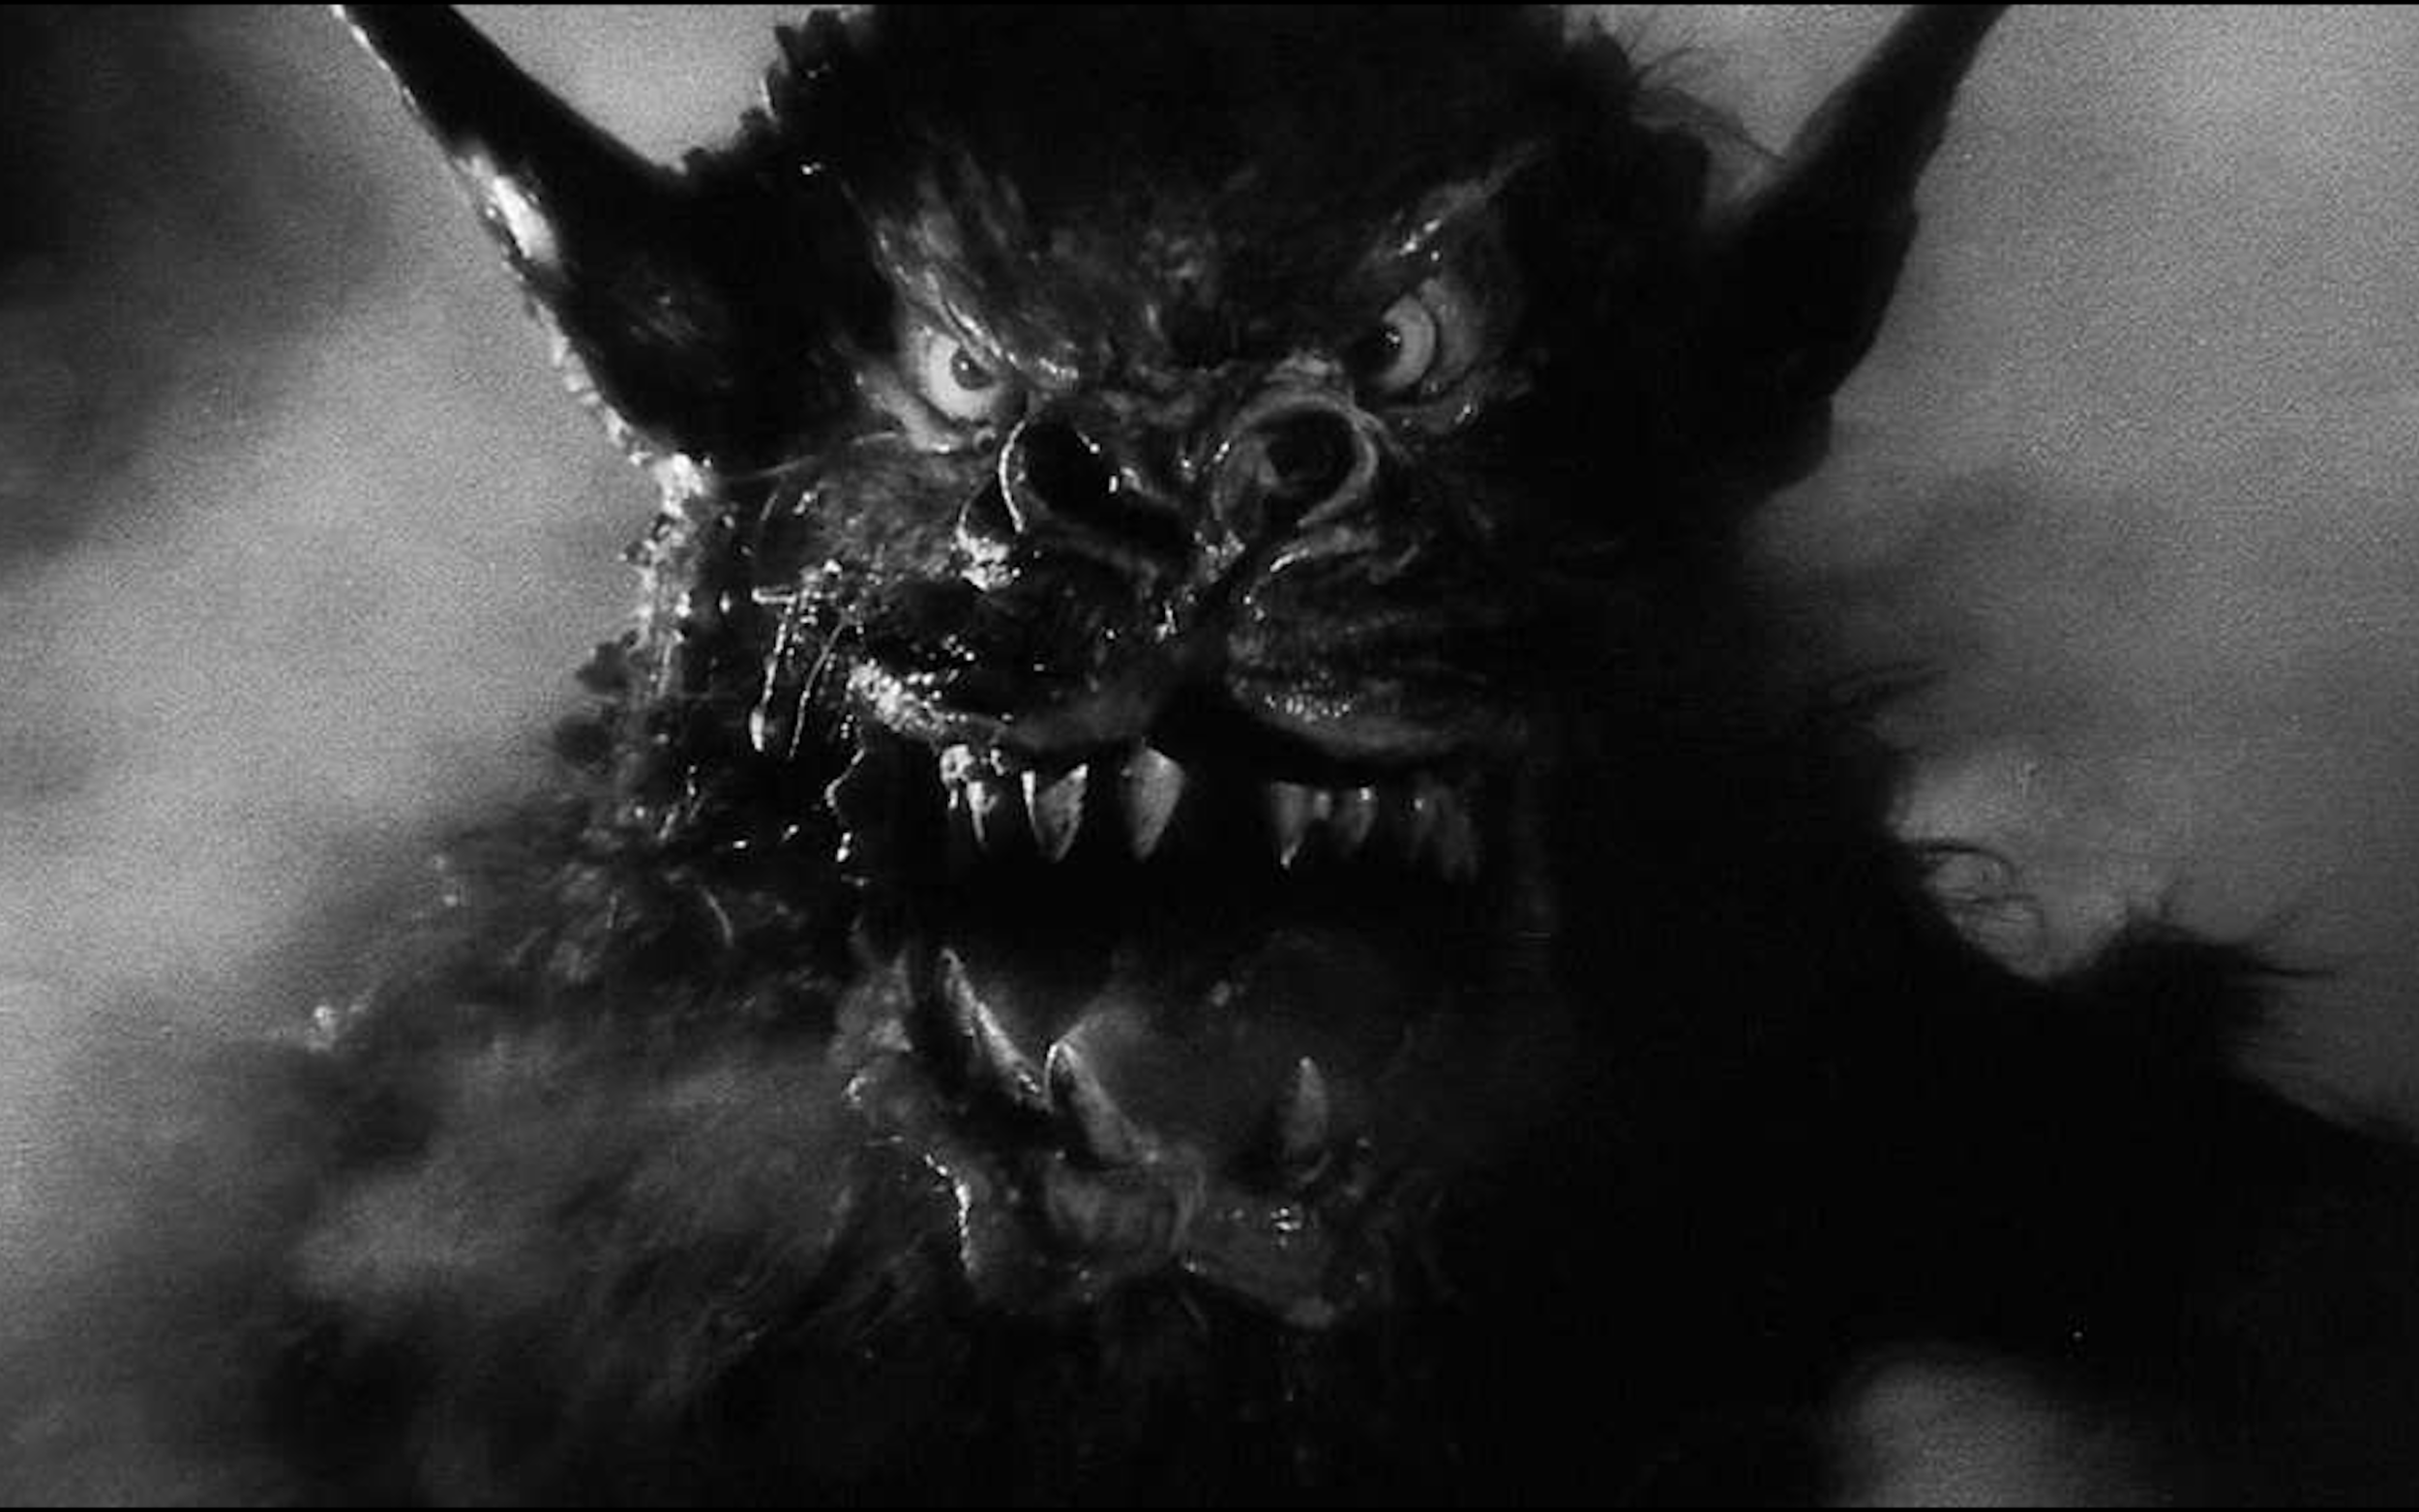 Double Exposure - A Conversation with film historian MH Wilson on the Scariest Film Ever Made